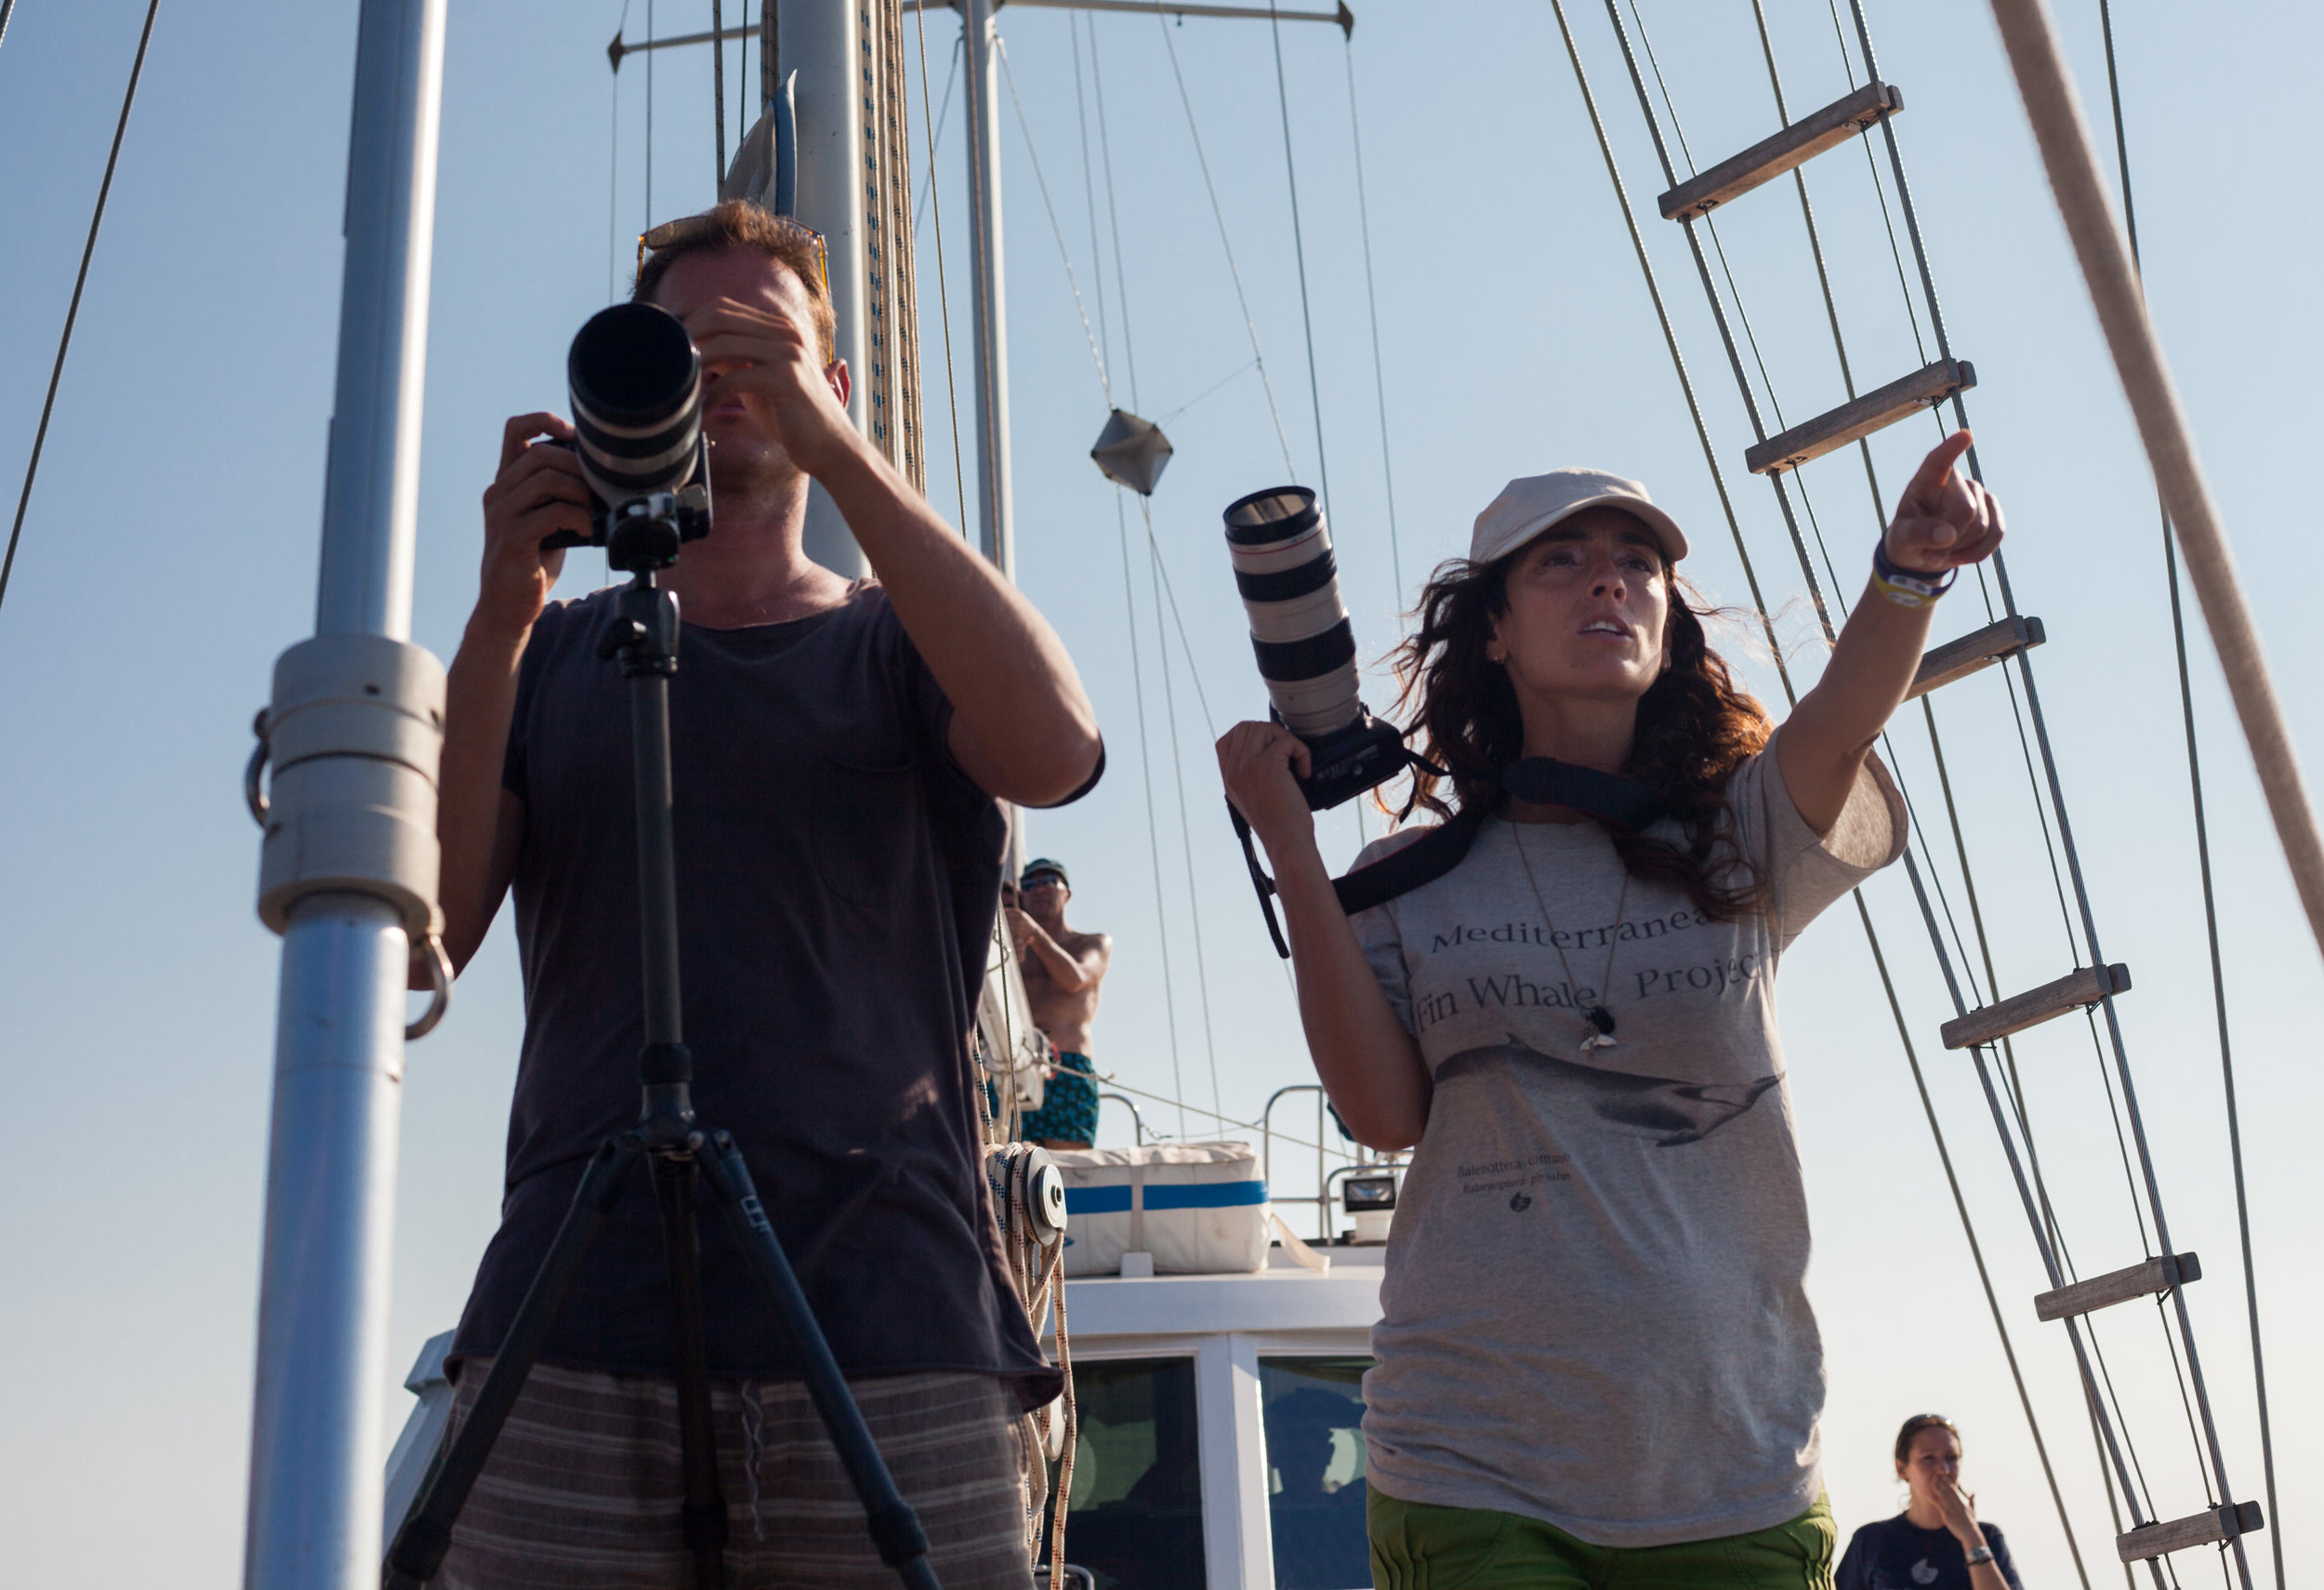 Co-Director James Sherwood and Principal Field Investigator, Alessia Scuderi filming and photographing wildlife out in the Pelagos Sanctuary in the Mediterranean Sea.